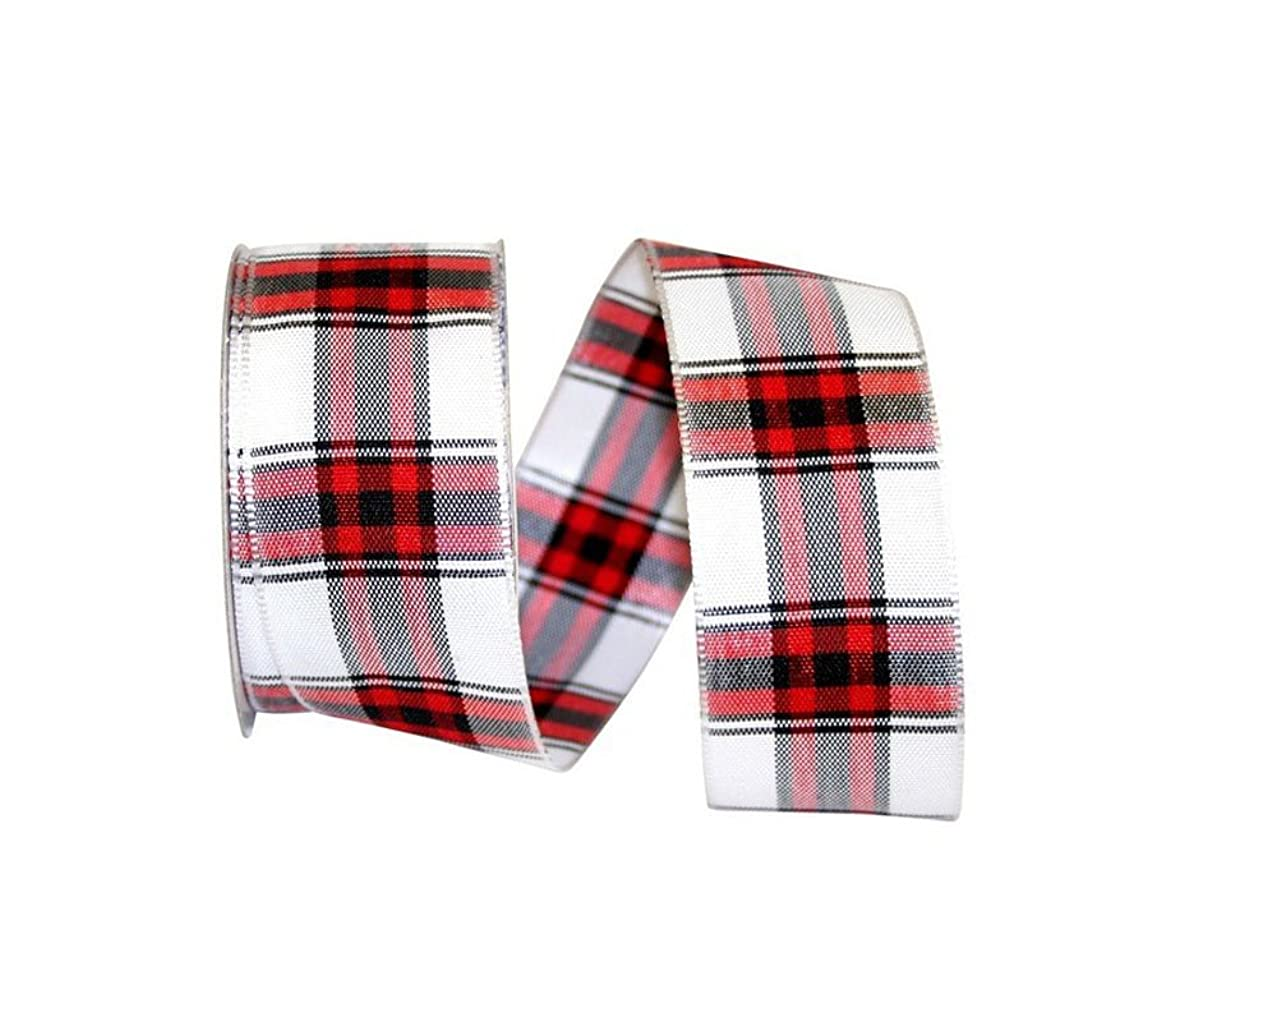 Reliant Ribbon 25762W-036-09F Woven Lauren Plaid Wired Edge Ribbon, 1-1/2 Inch X 10 Yards, White/red